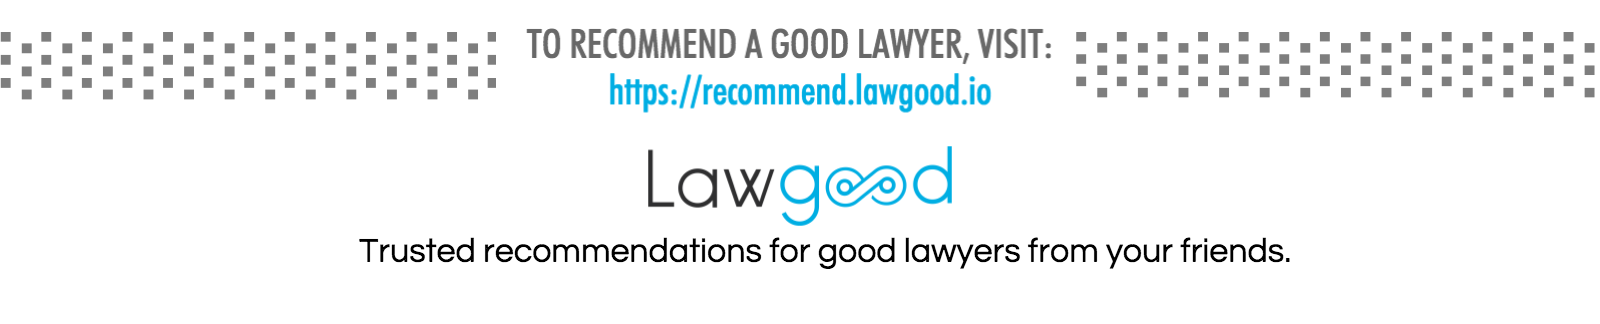 Lawgood recommend lawyer